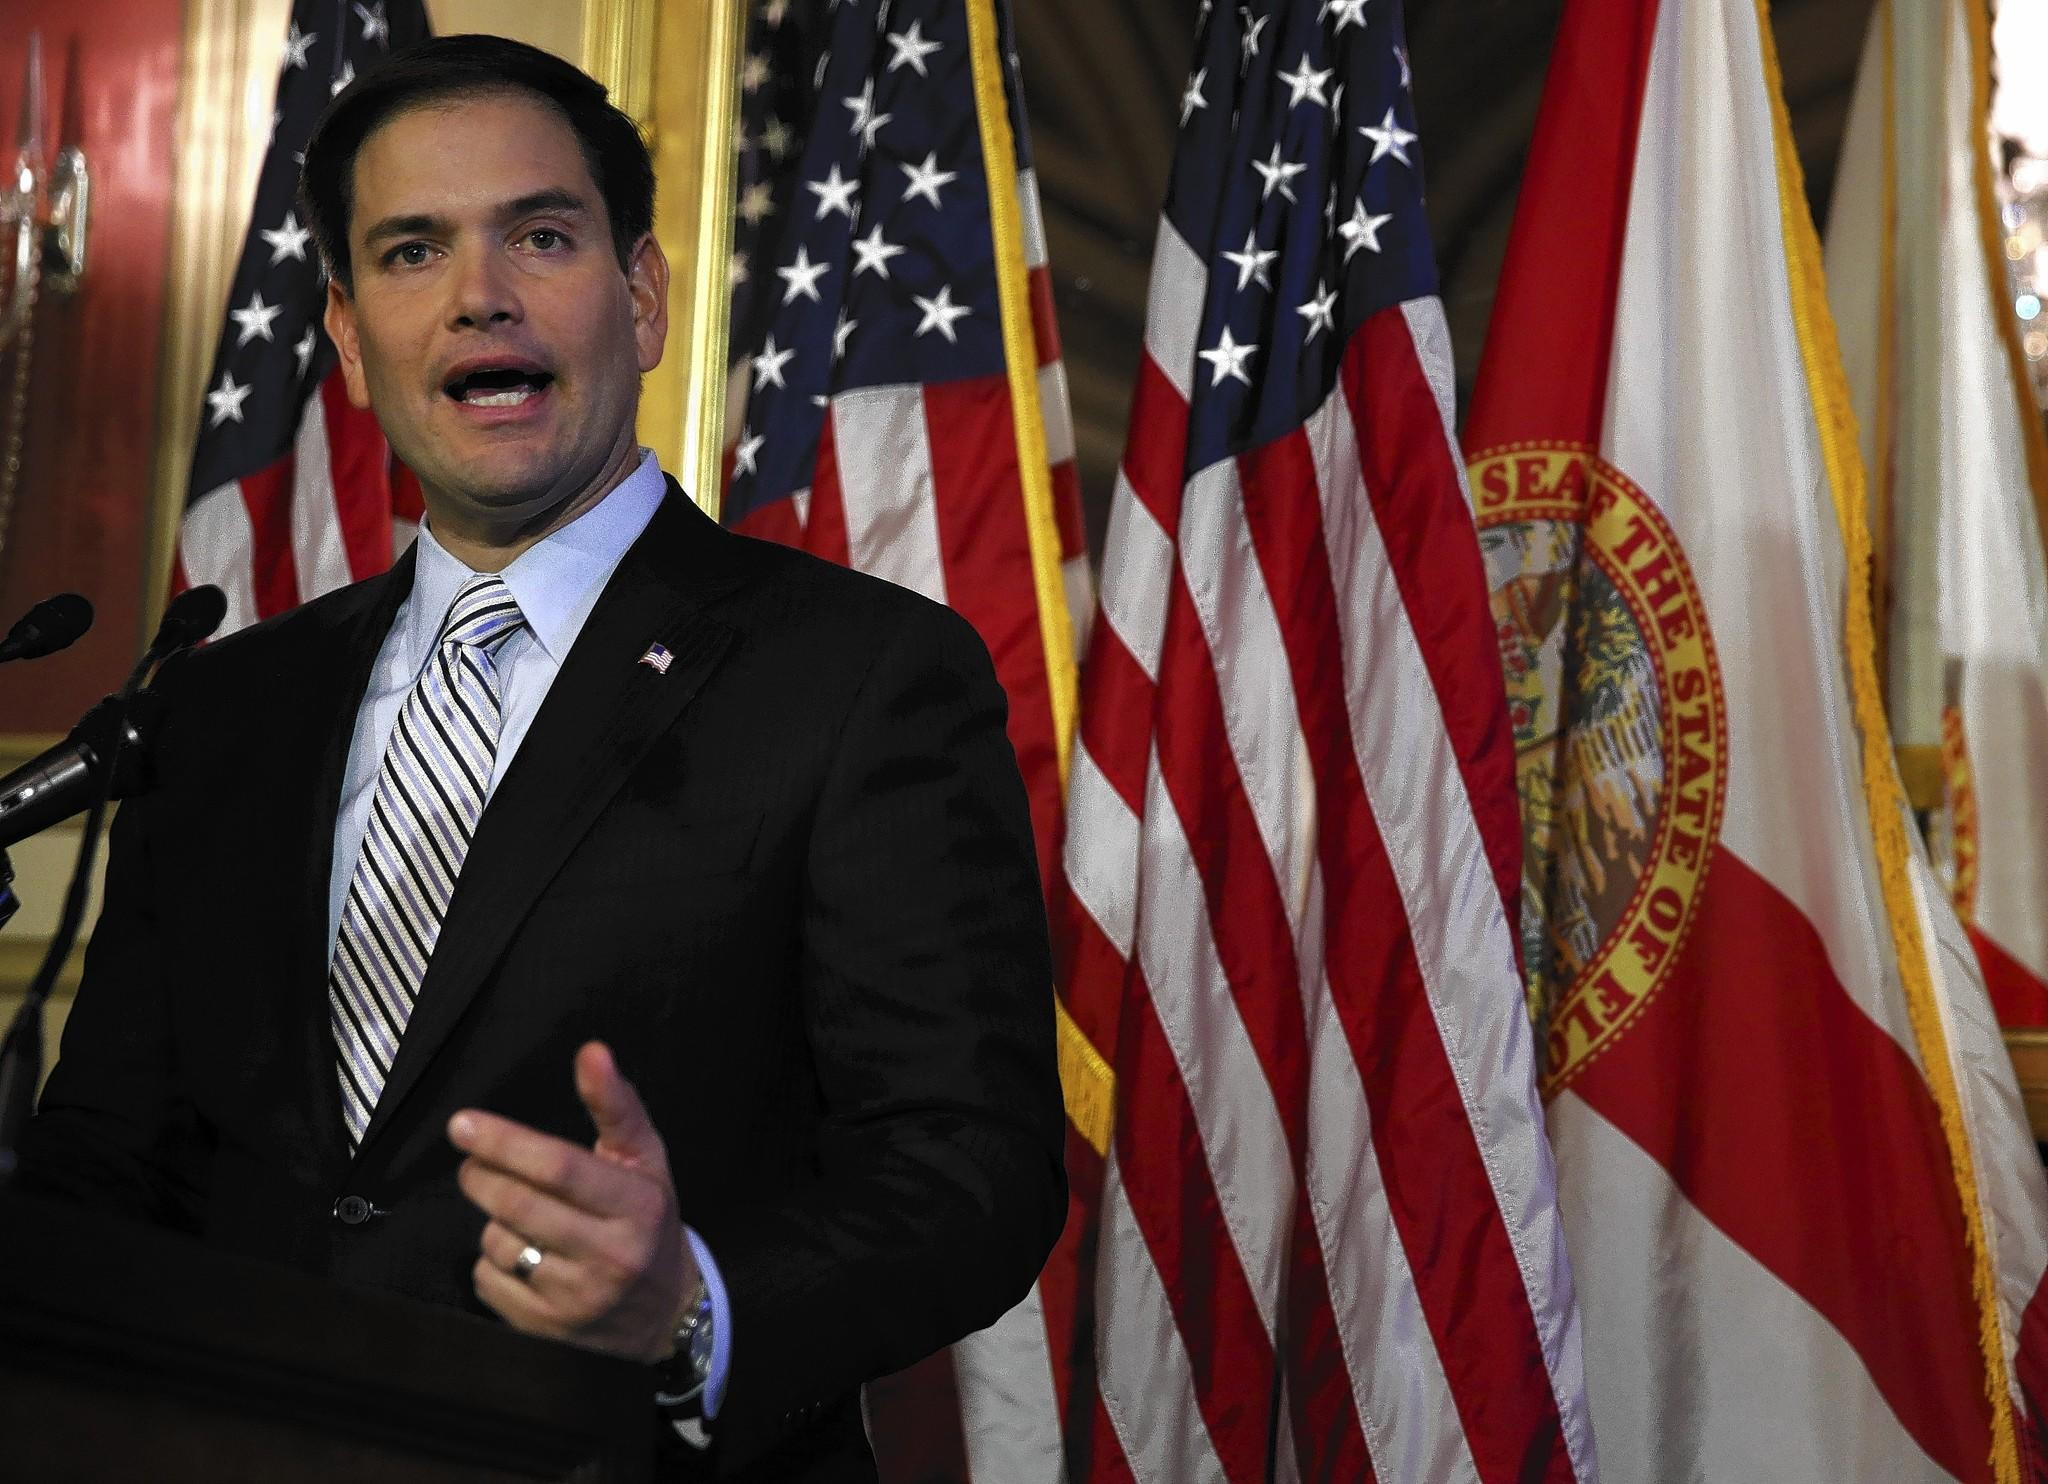 Sen. Marco Rubio has introduced legislation to repeal the risk-corridors provision in the Affordable Care Act that offers protection to insurance companies.